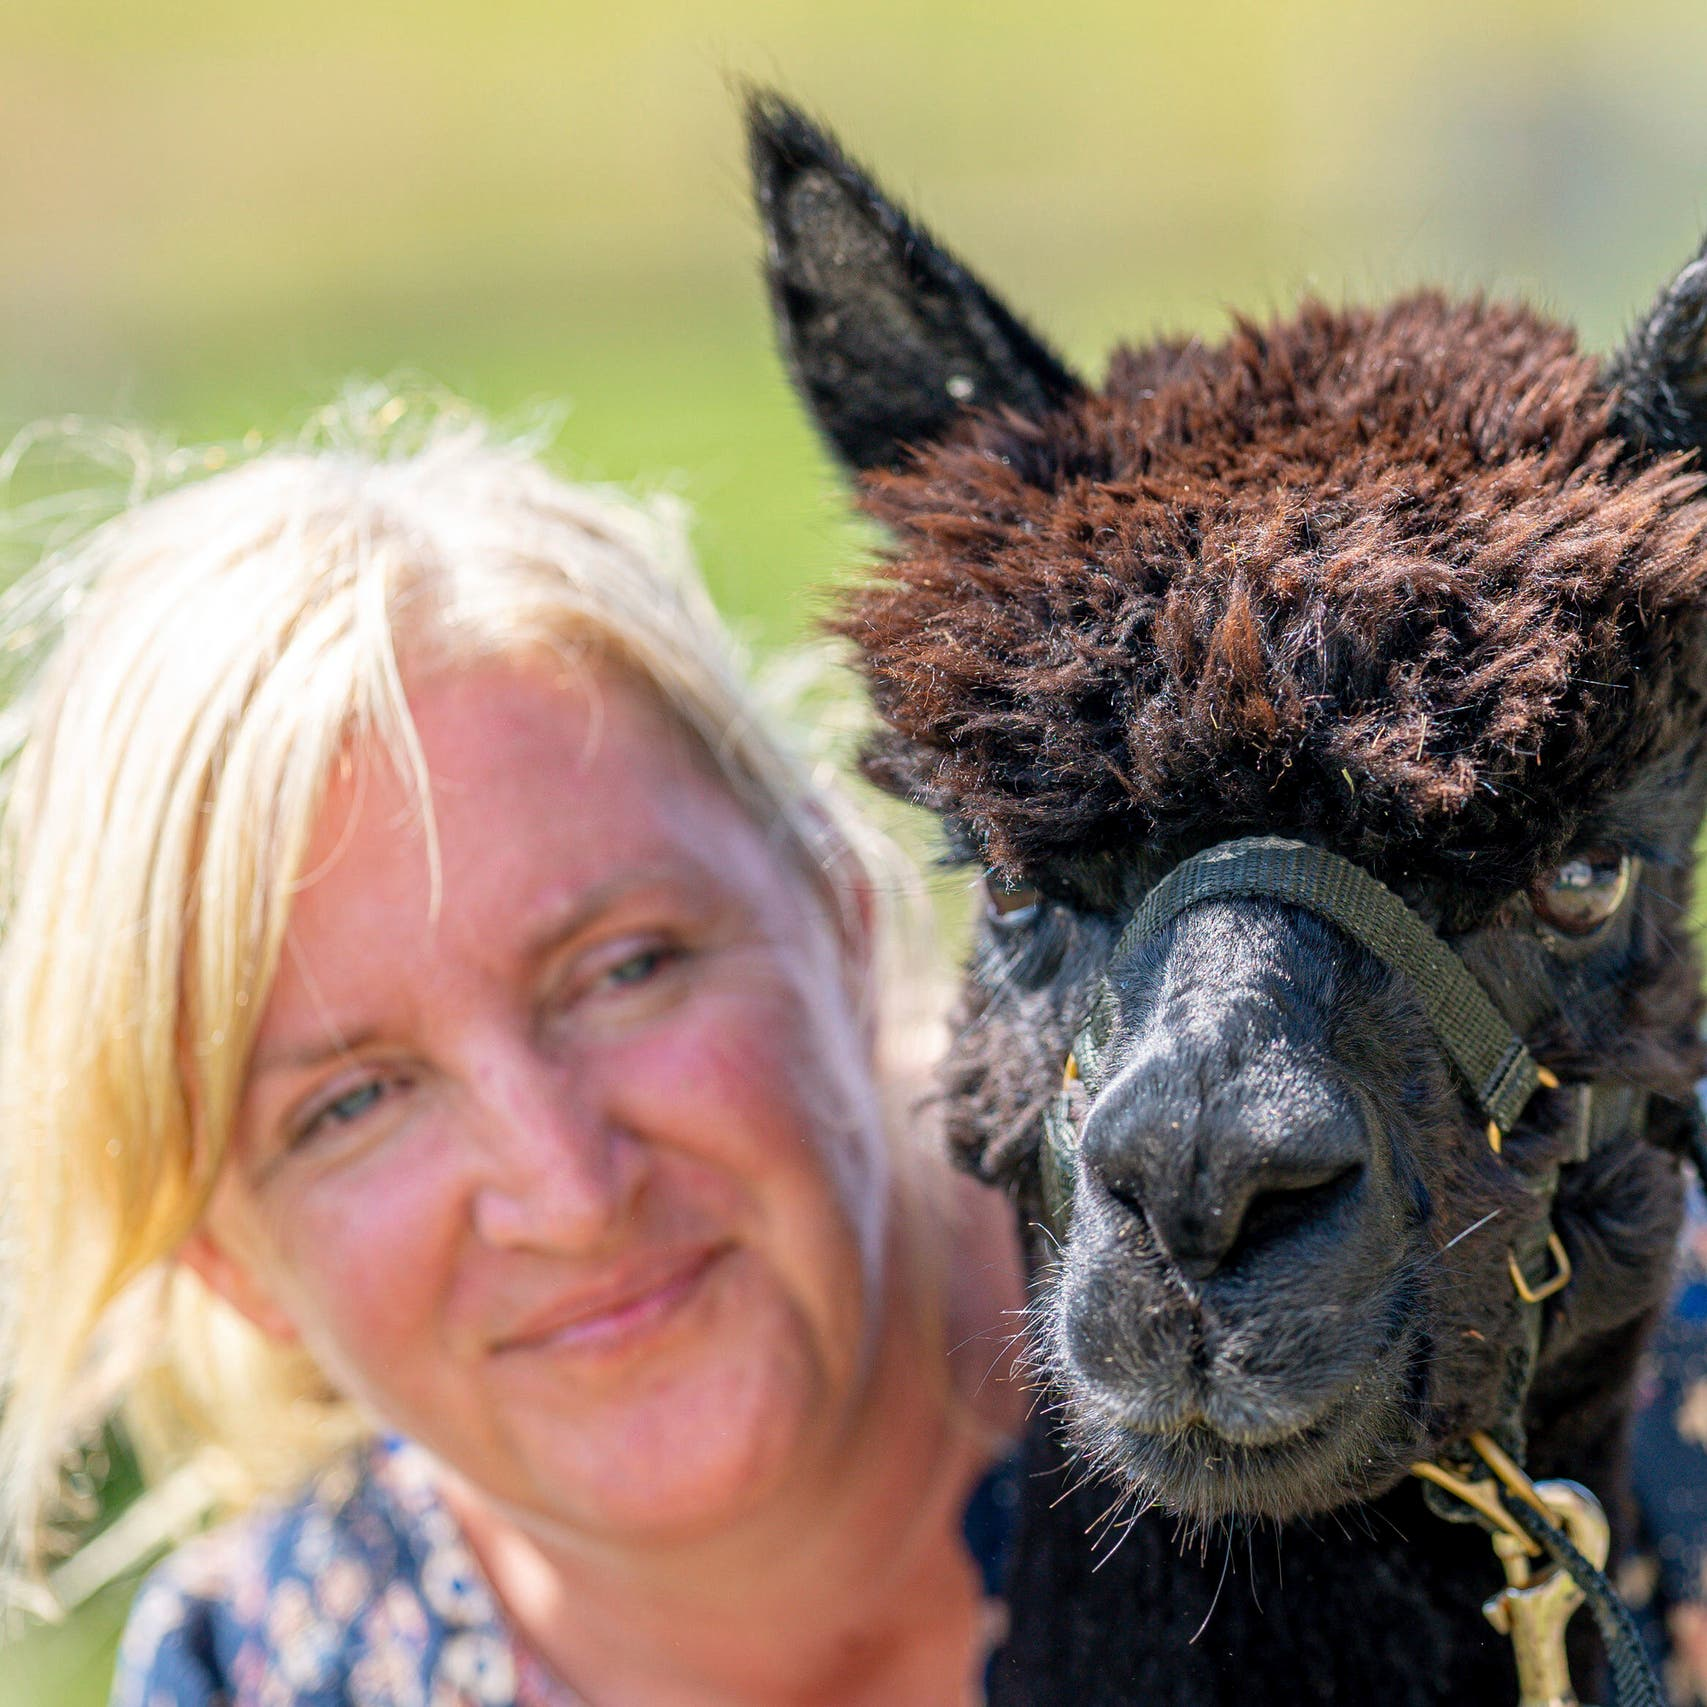 Farmer Macdonald loses appeal to save alpaca Geronimo from being killed